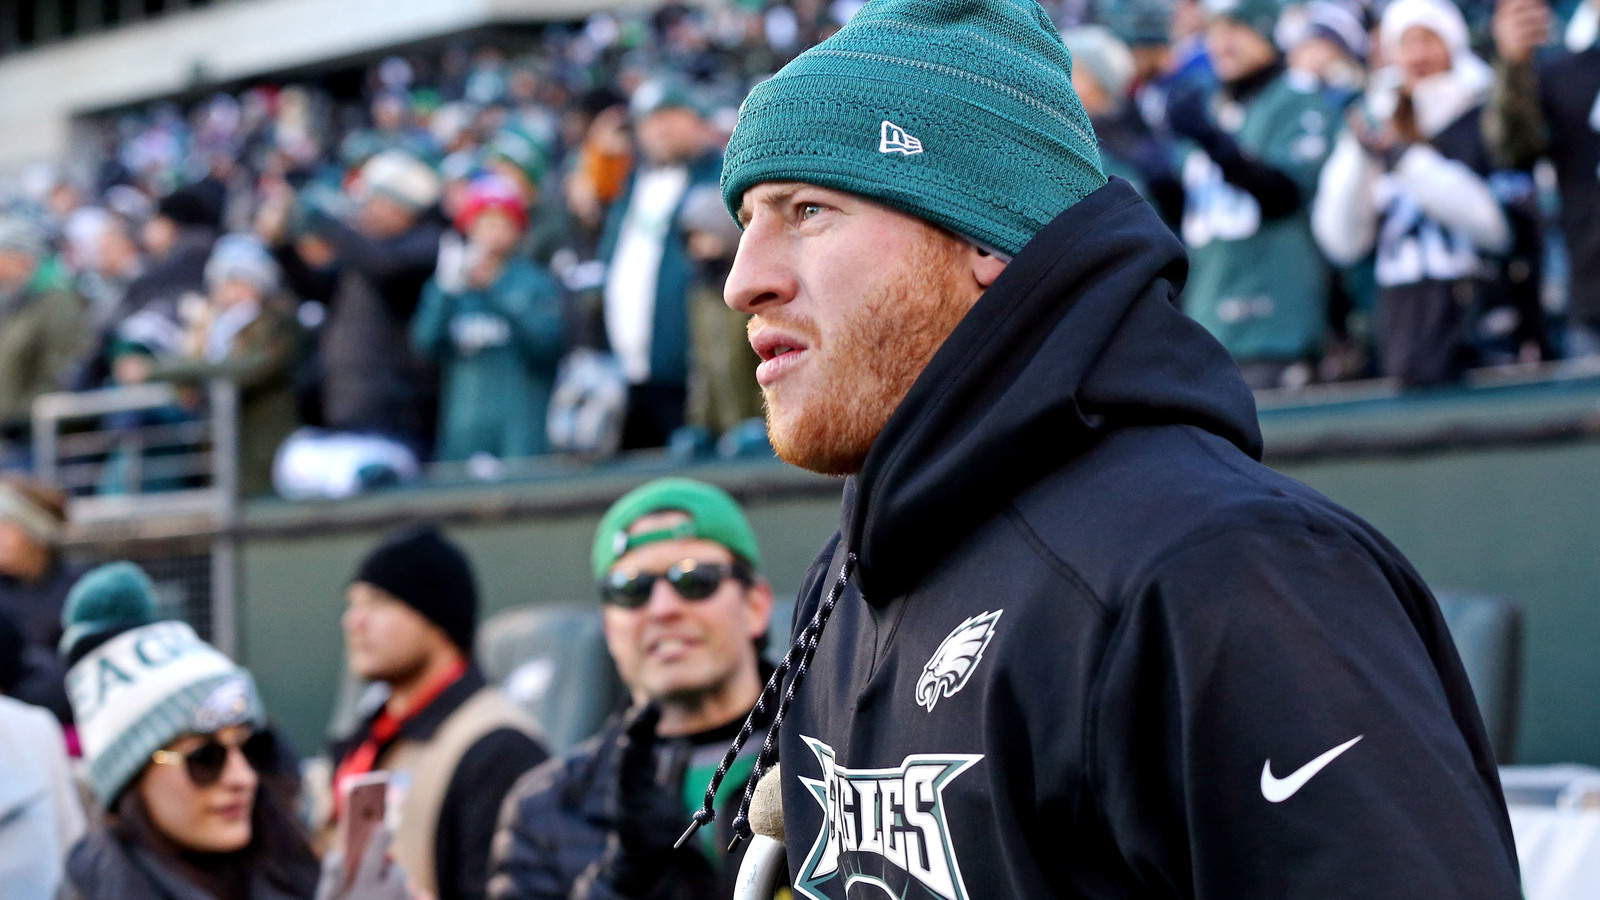 Carson Wentz okay being Philadelphia Eagles cheerleader for Super Bowl 2018 images